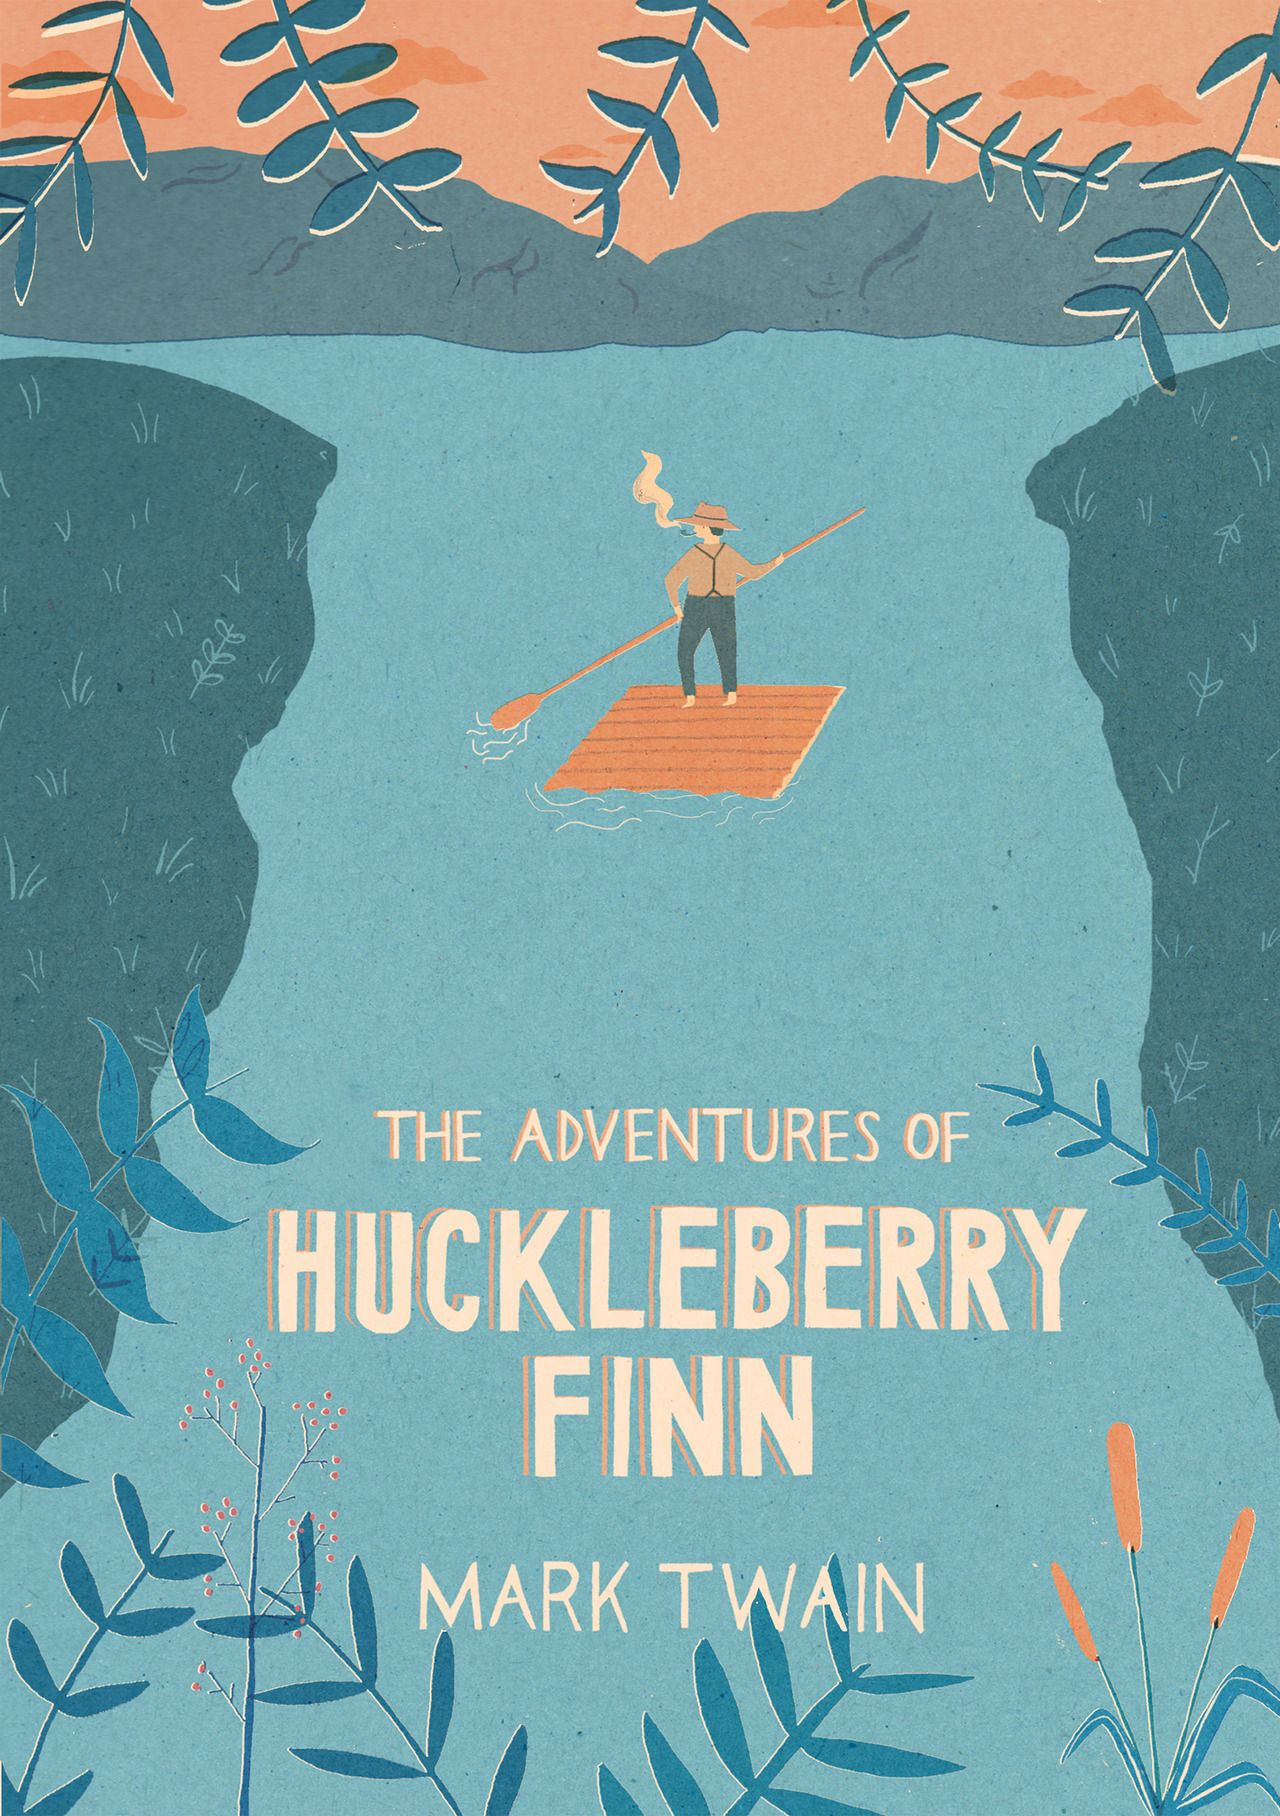 mark twain the adventures of huckleberry finn book cover don mark twain the adventures of huckleberry finn book cover